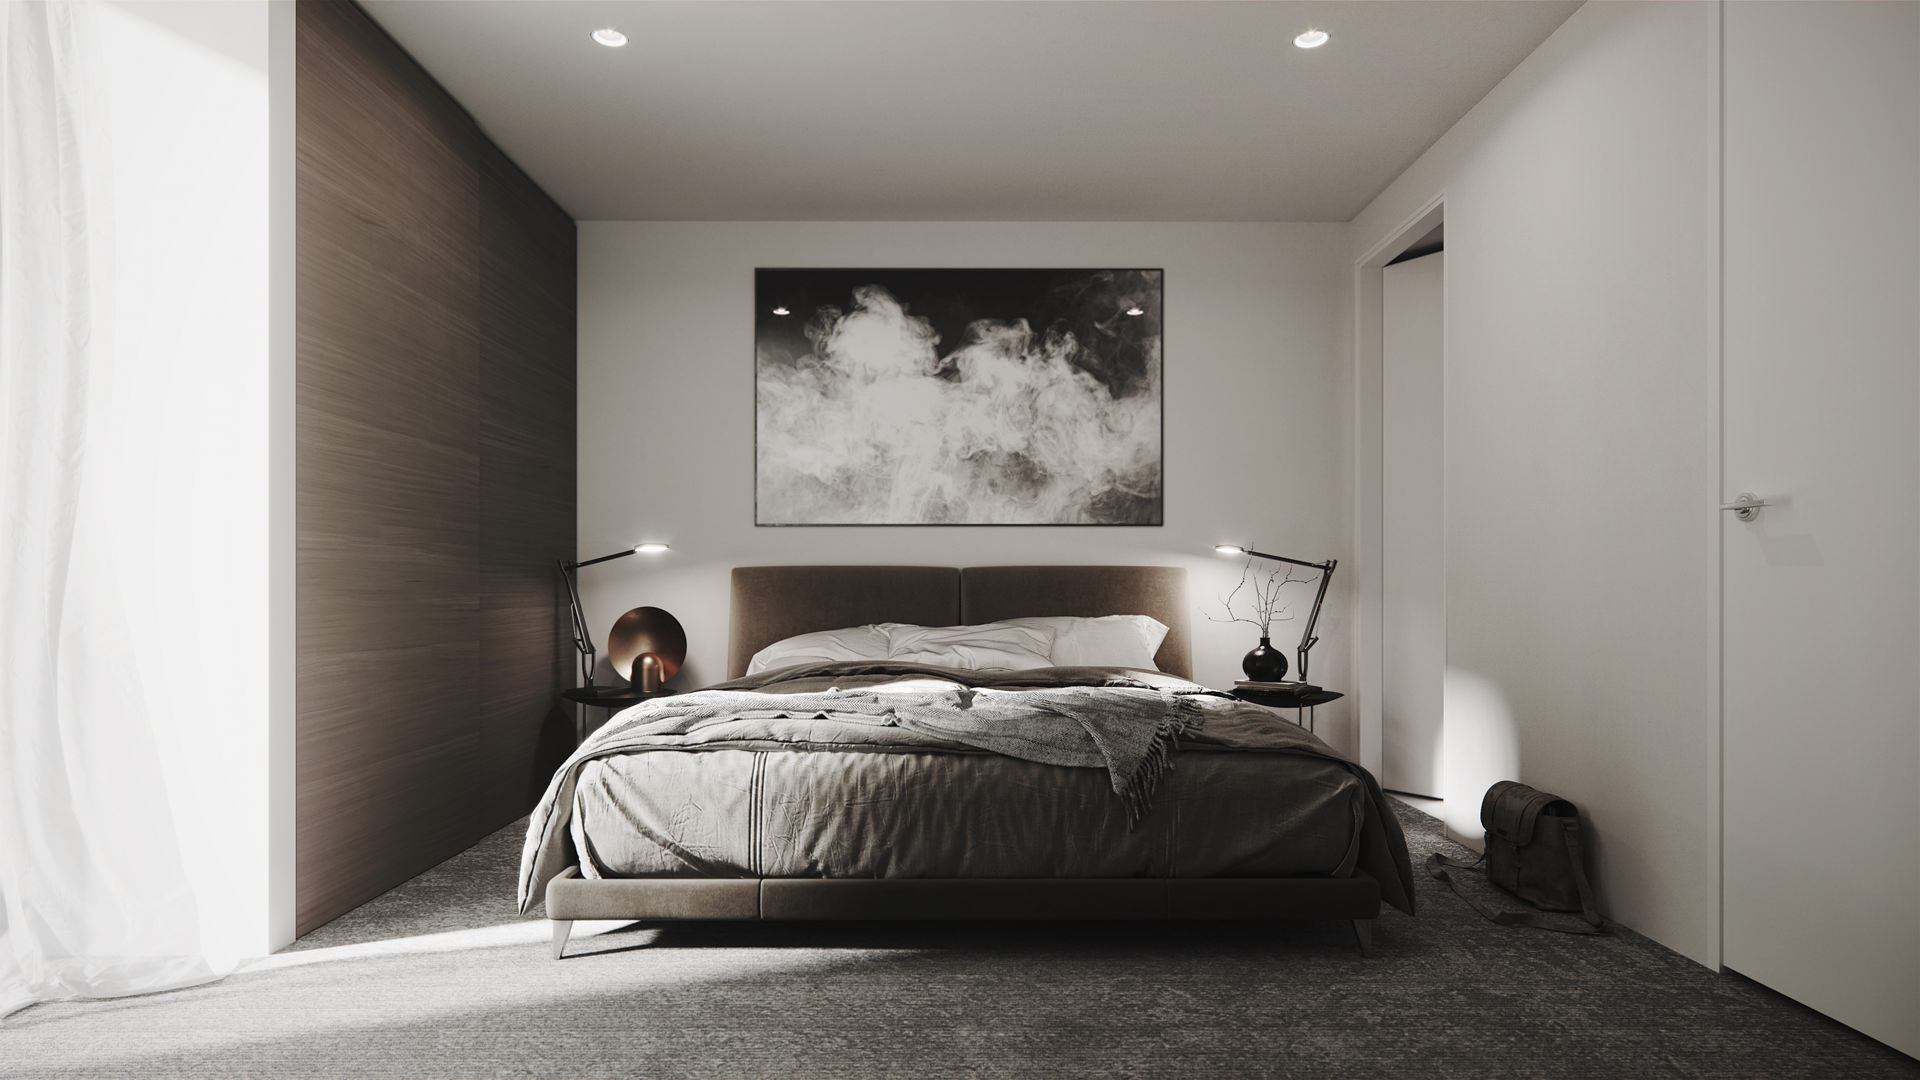 Interior 3D visualization of a master bedroom in a gray and white color palette, featuring smoke artwork, designer bedside tables, petite benches in a black glossy vase and minimalistic brass reading-lamps